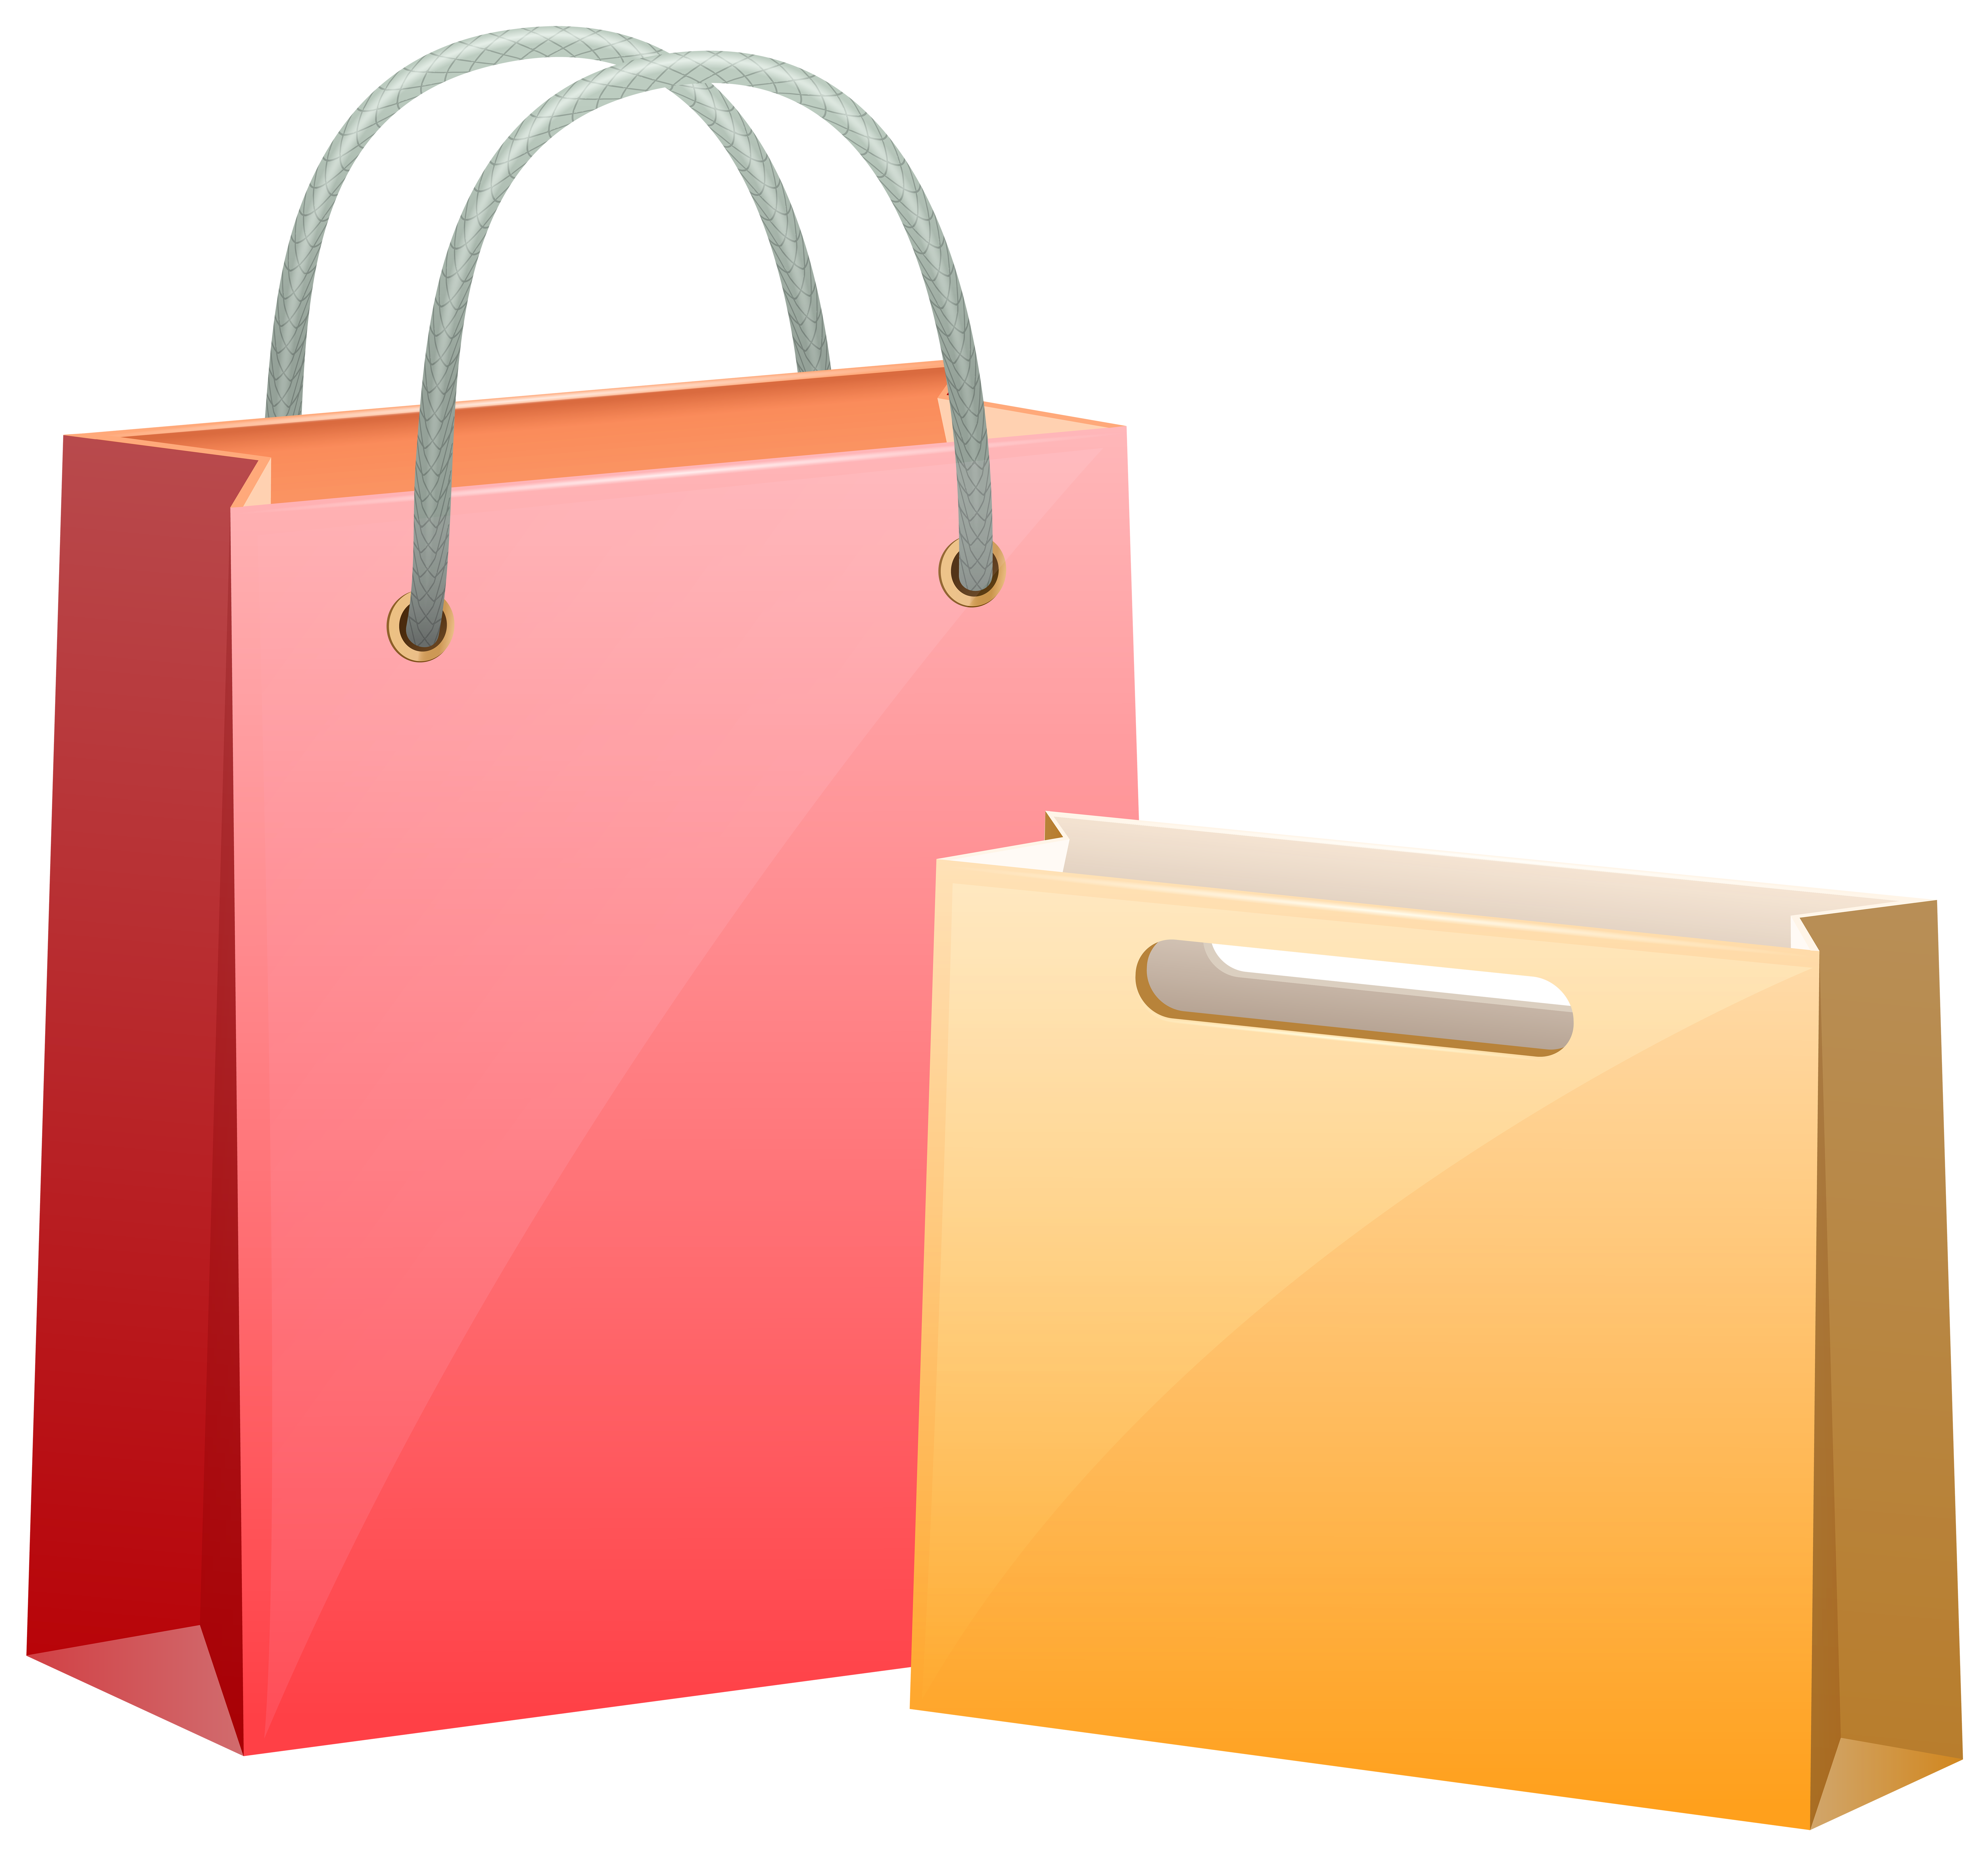 Luggage clipart office. Gift bags png clip